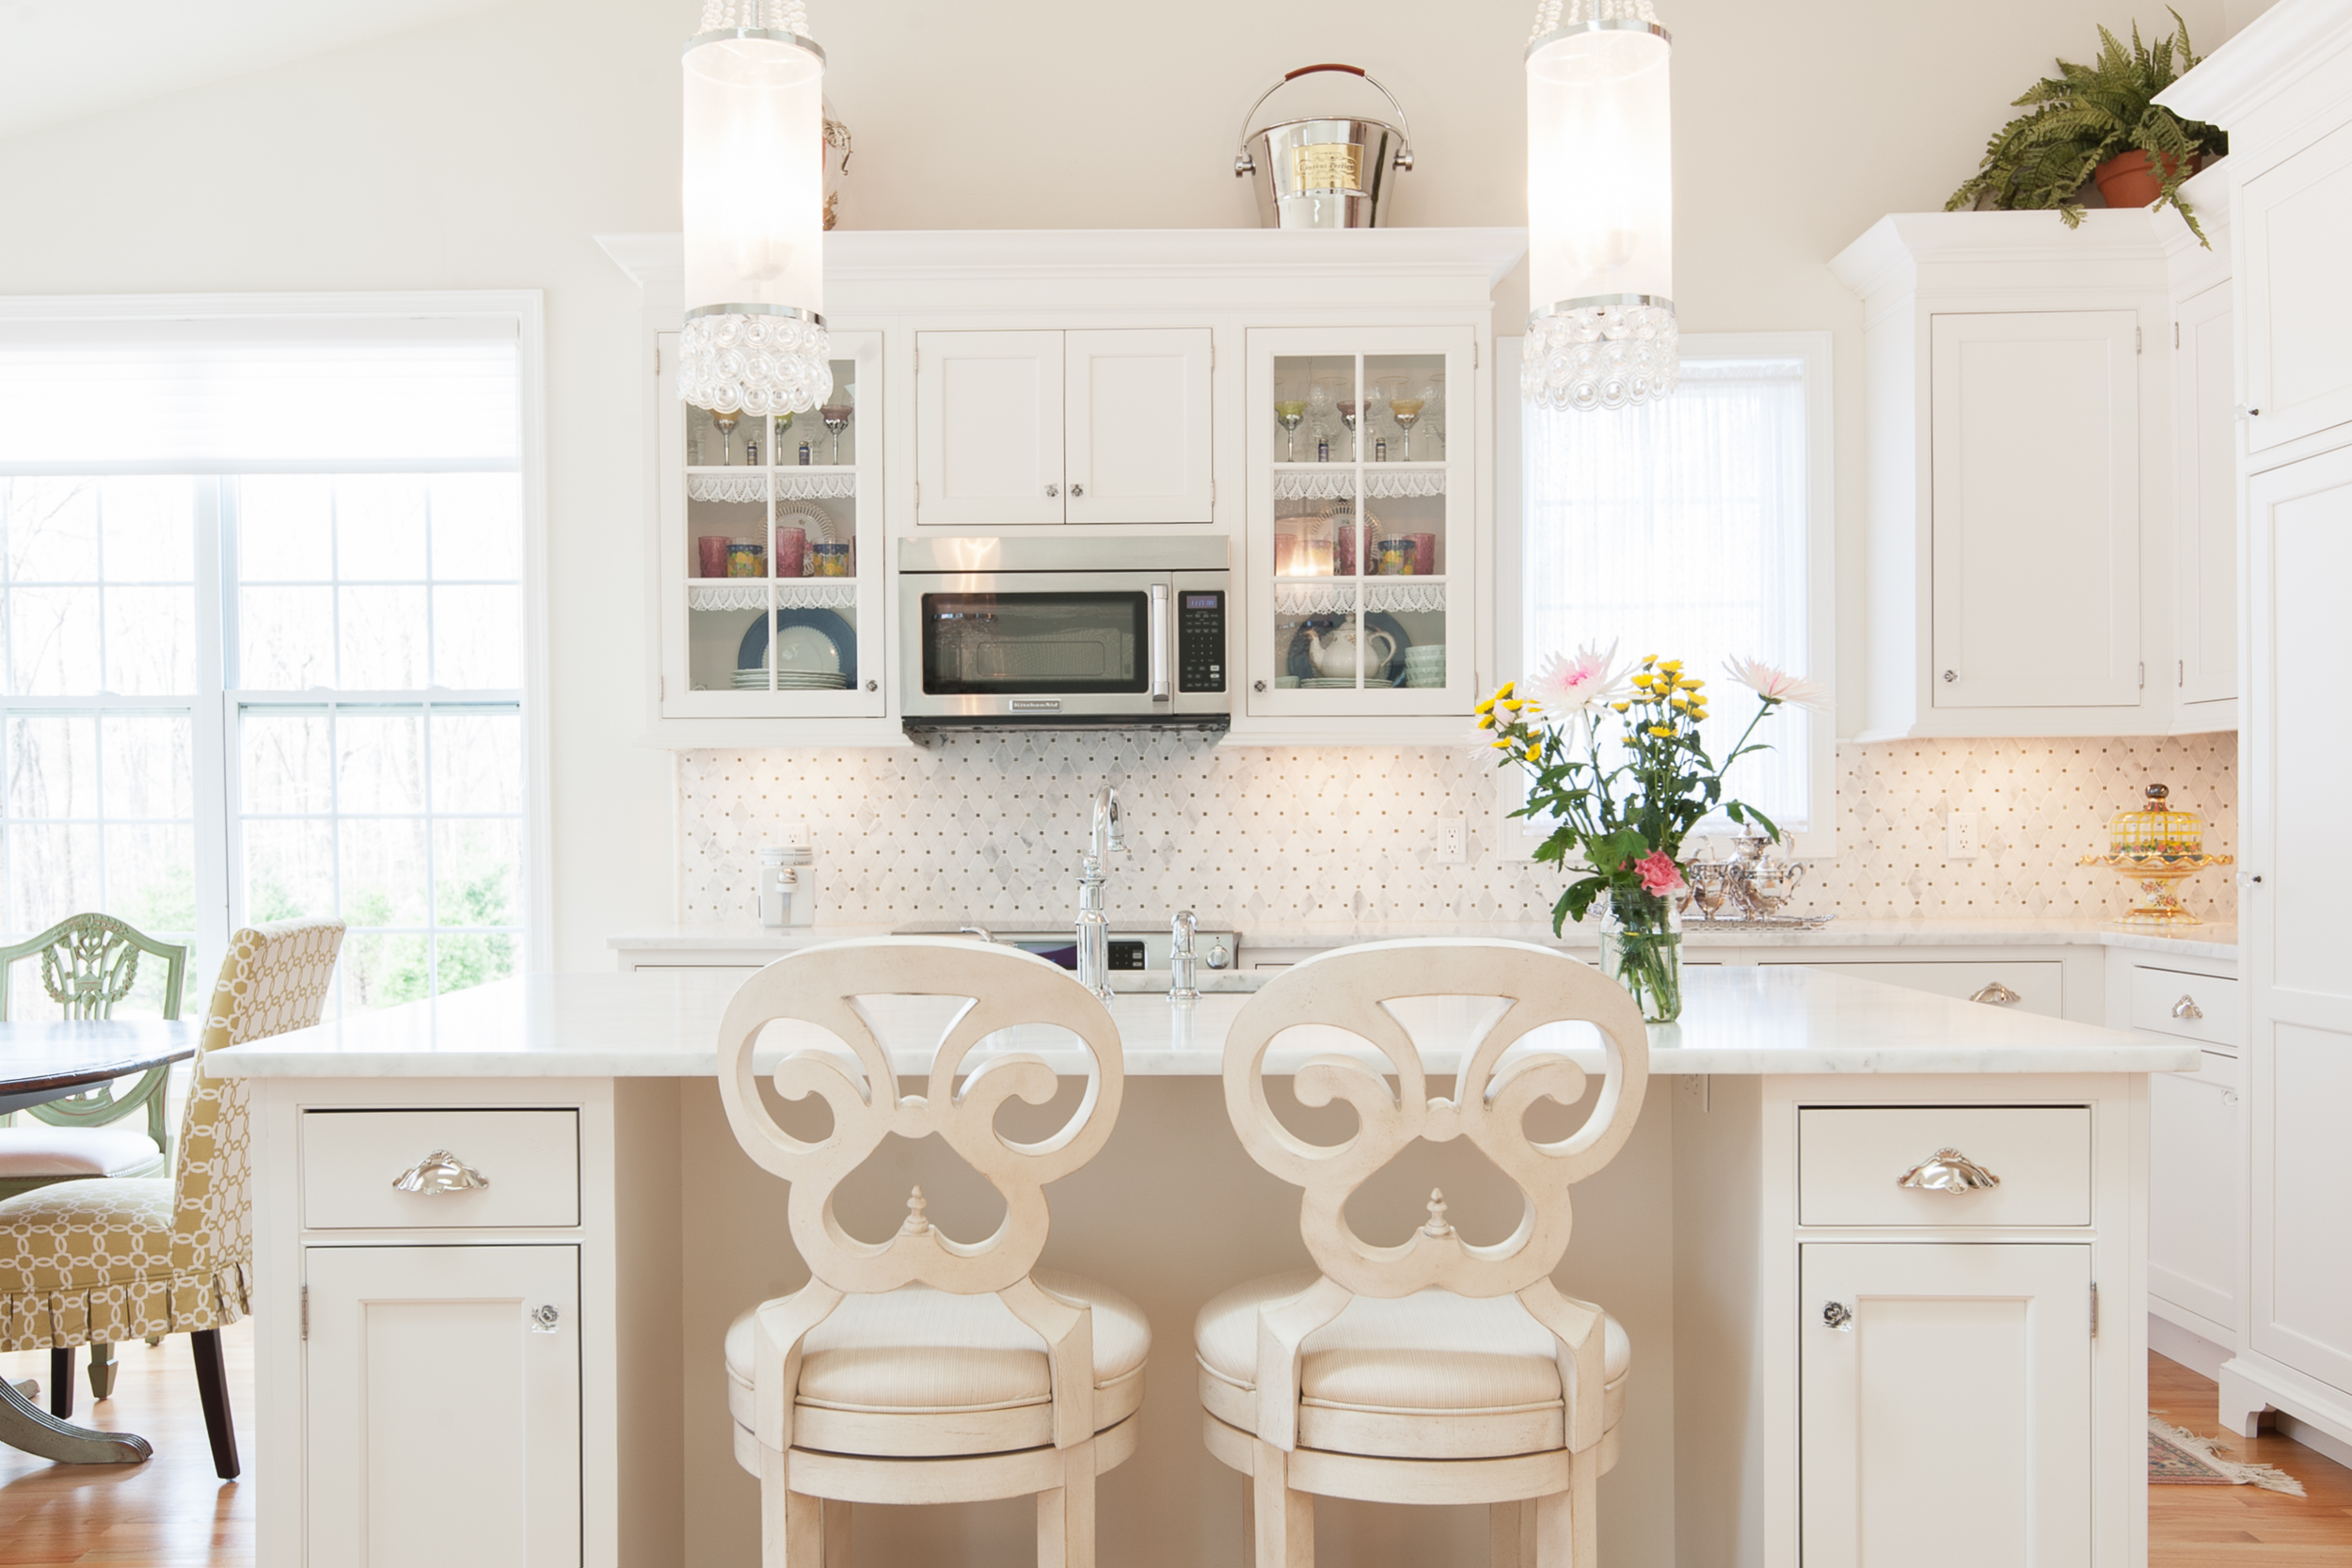 187 Light And Airy Kitchen Light Airy Kitchen Design Ideas Quicua Light Airy Kitchen Design